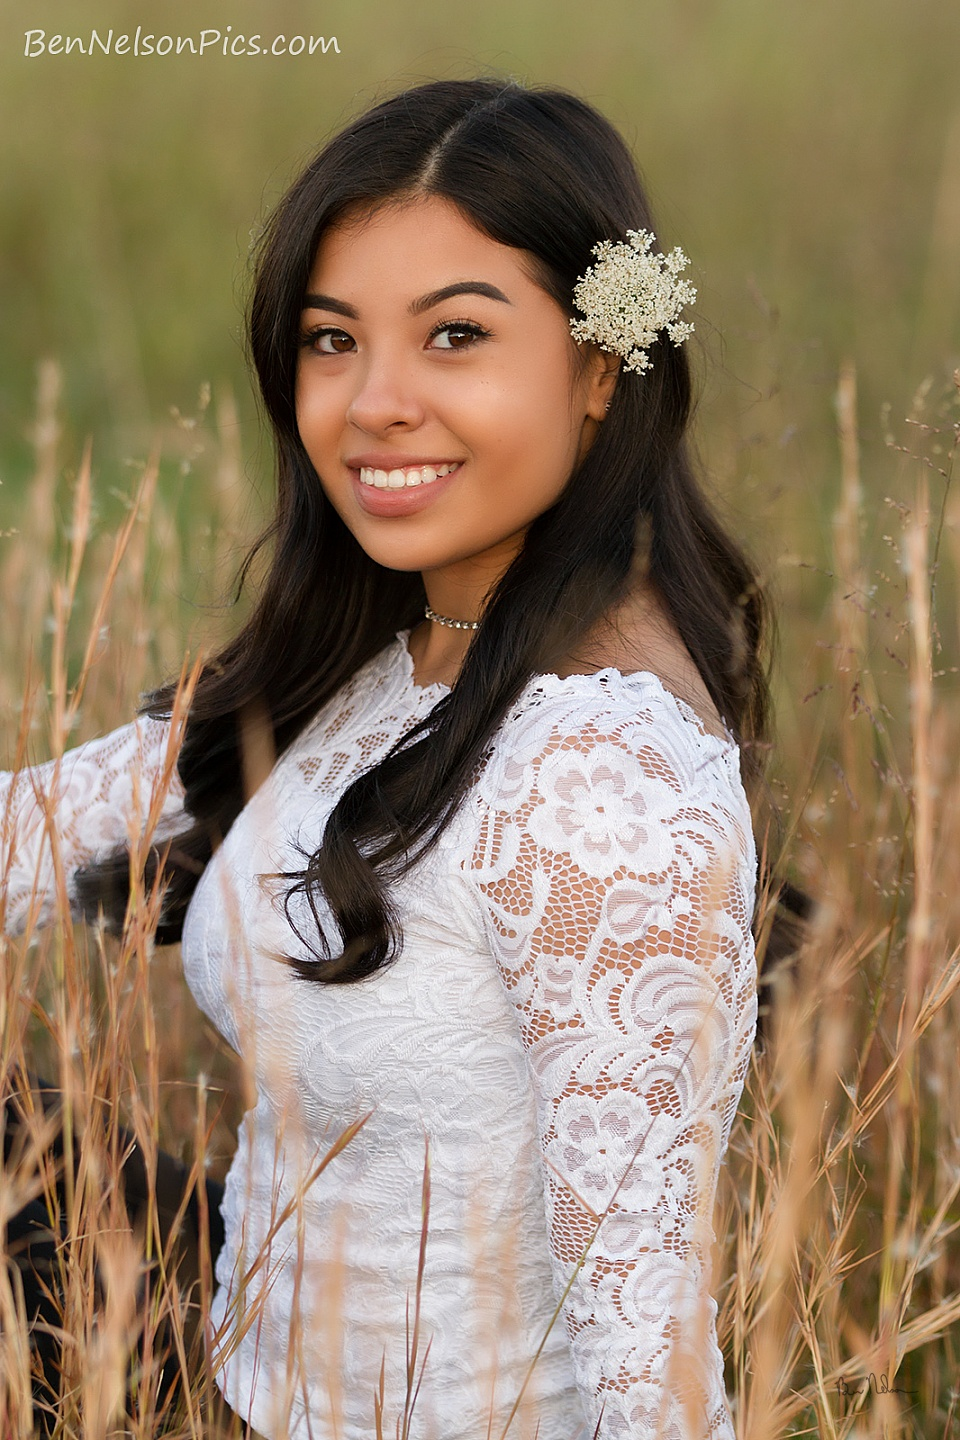 A collection of Senior Pictures and Portraits in the Springfield Missouri area by Ben Nelson - Kyla Blair senior photo, taken in Springfield Missouri November 2017. She is from Thayer Missouri.